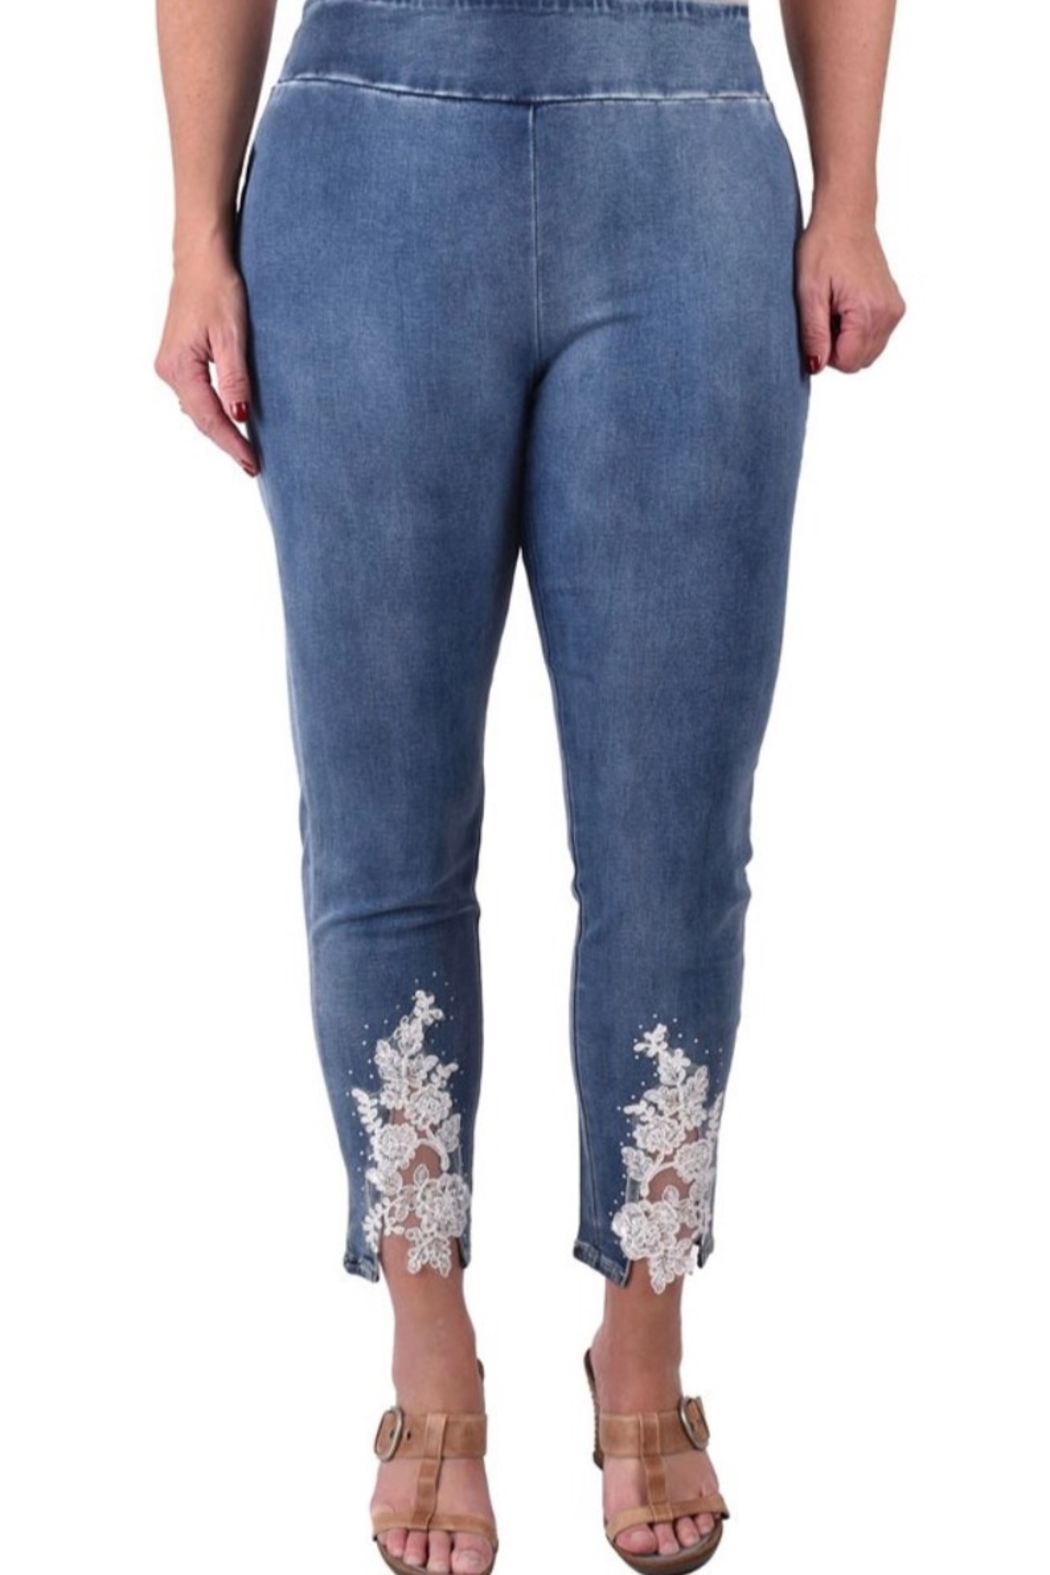 Ethyl Alani Pull on ankle jean with lace up front on bottom. - Main Image